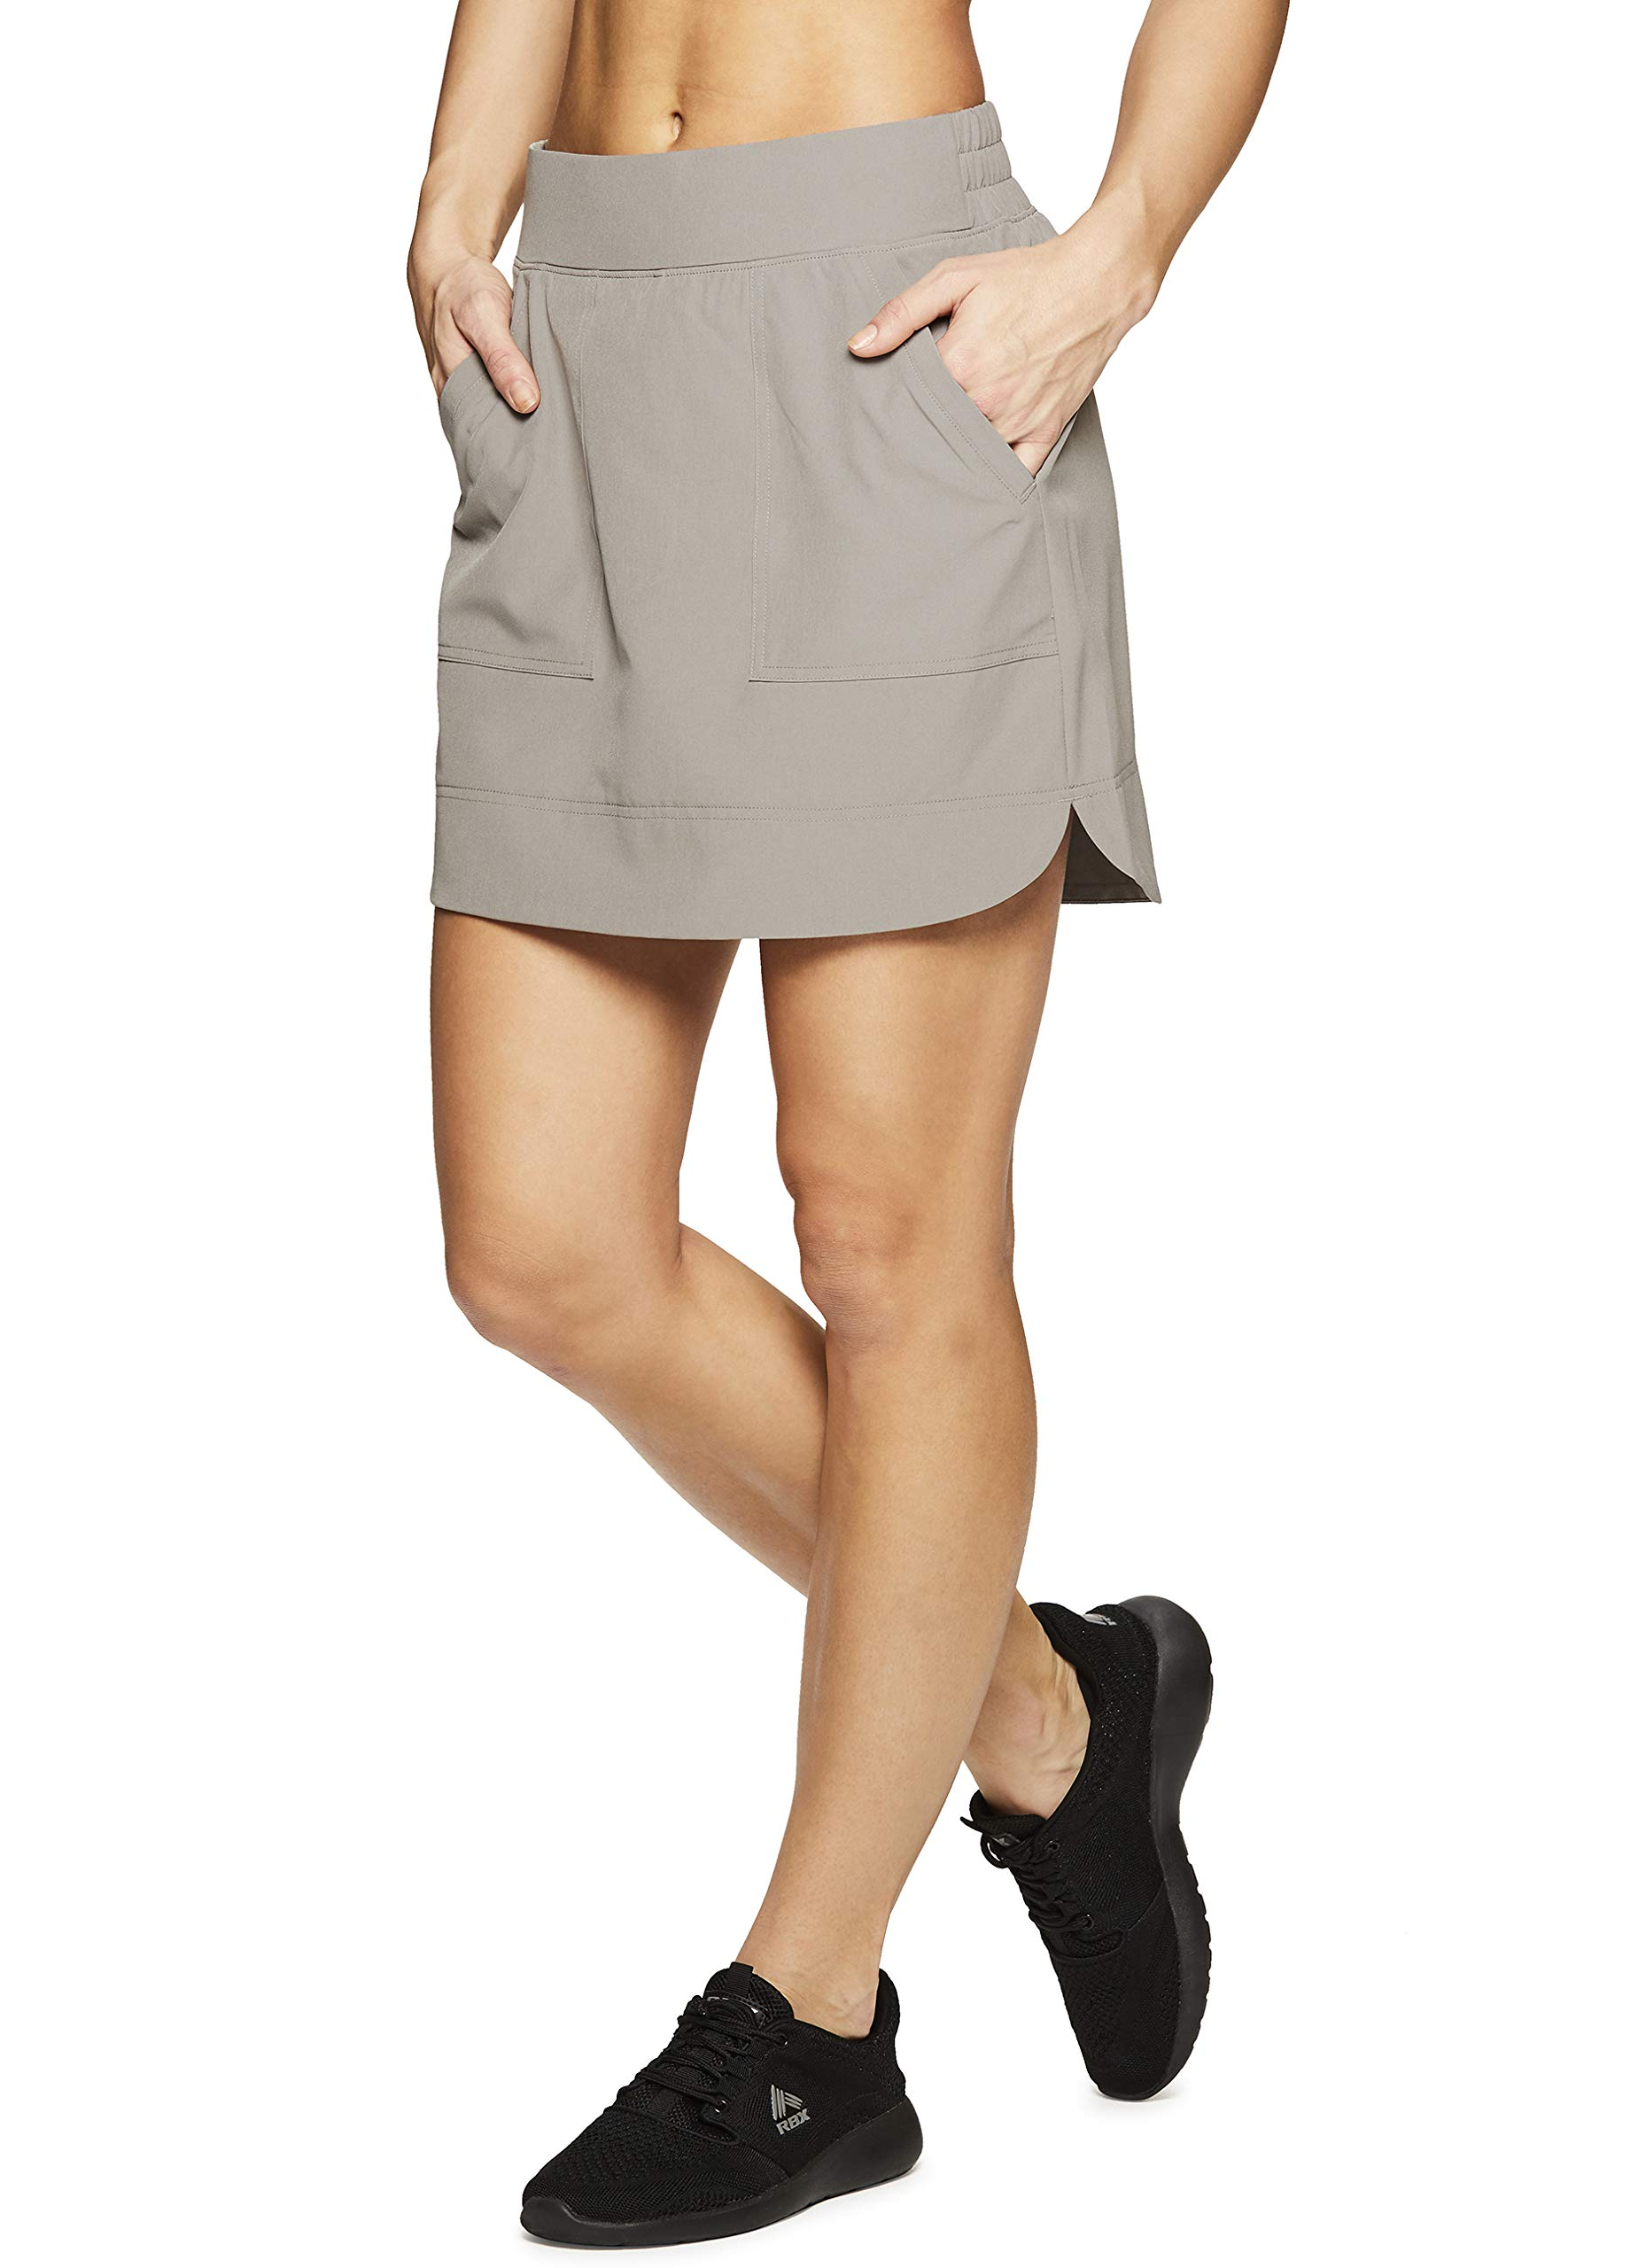 RBX Active Women's Golf/Tennis Athletic Skort with Bike Shorts and Pockets Spring Taupe M by RBX